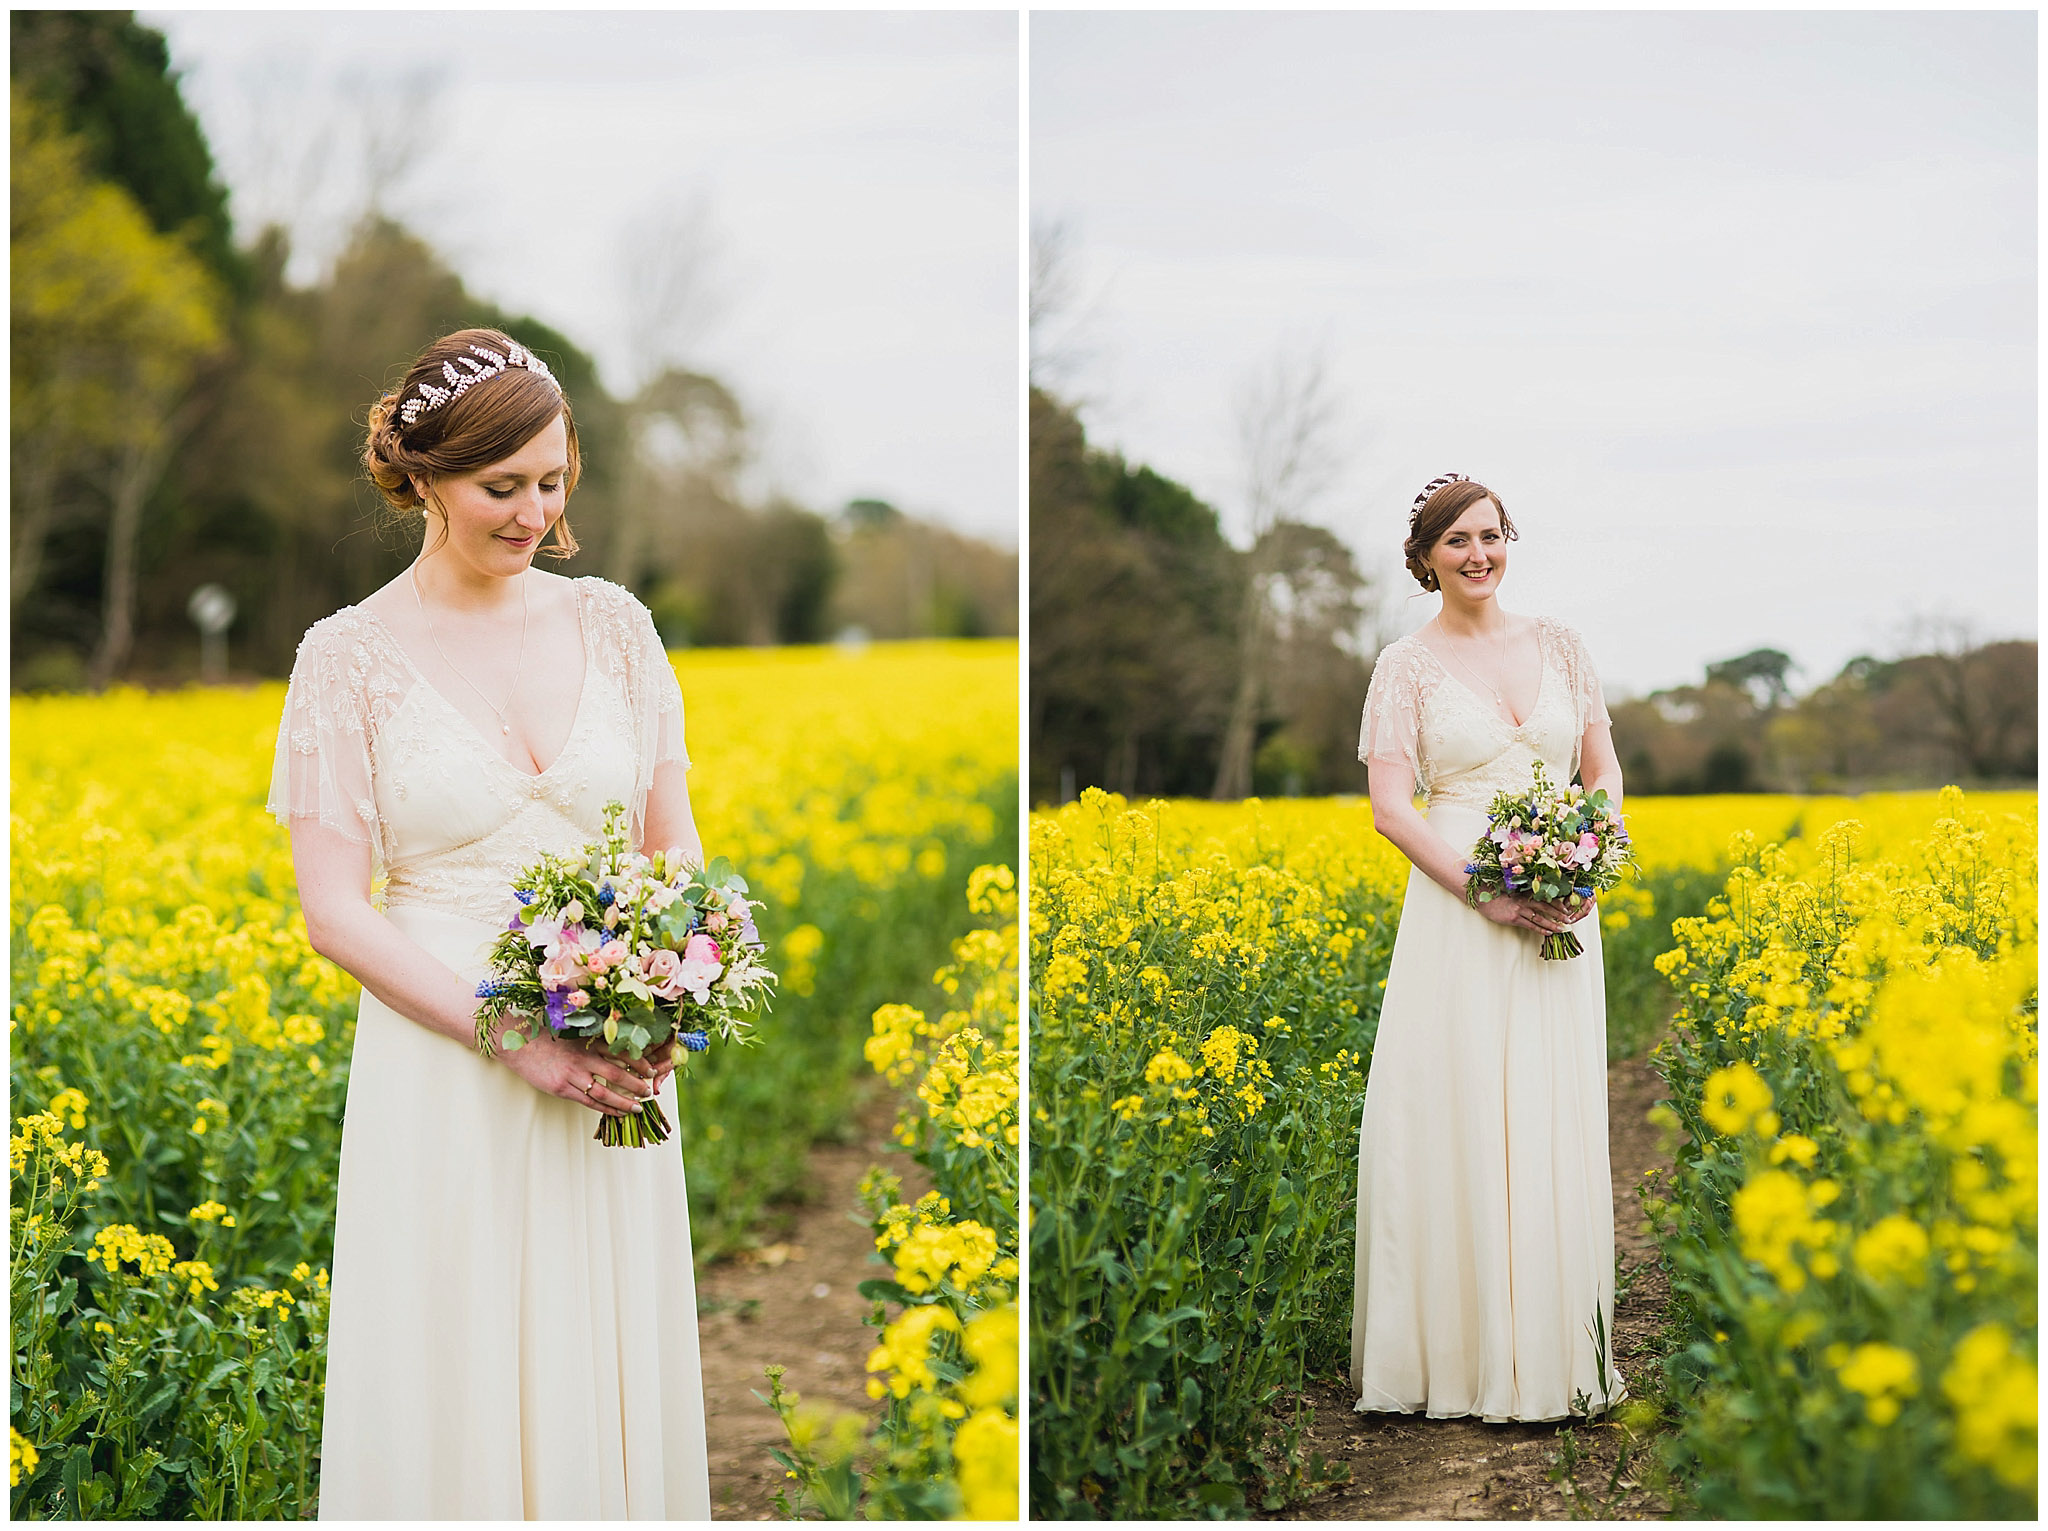 Sarah-&-Dan-The-Old-Vicarage-Wedding-Venue-Dorset-Photographer-32